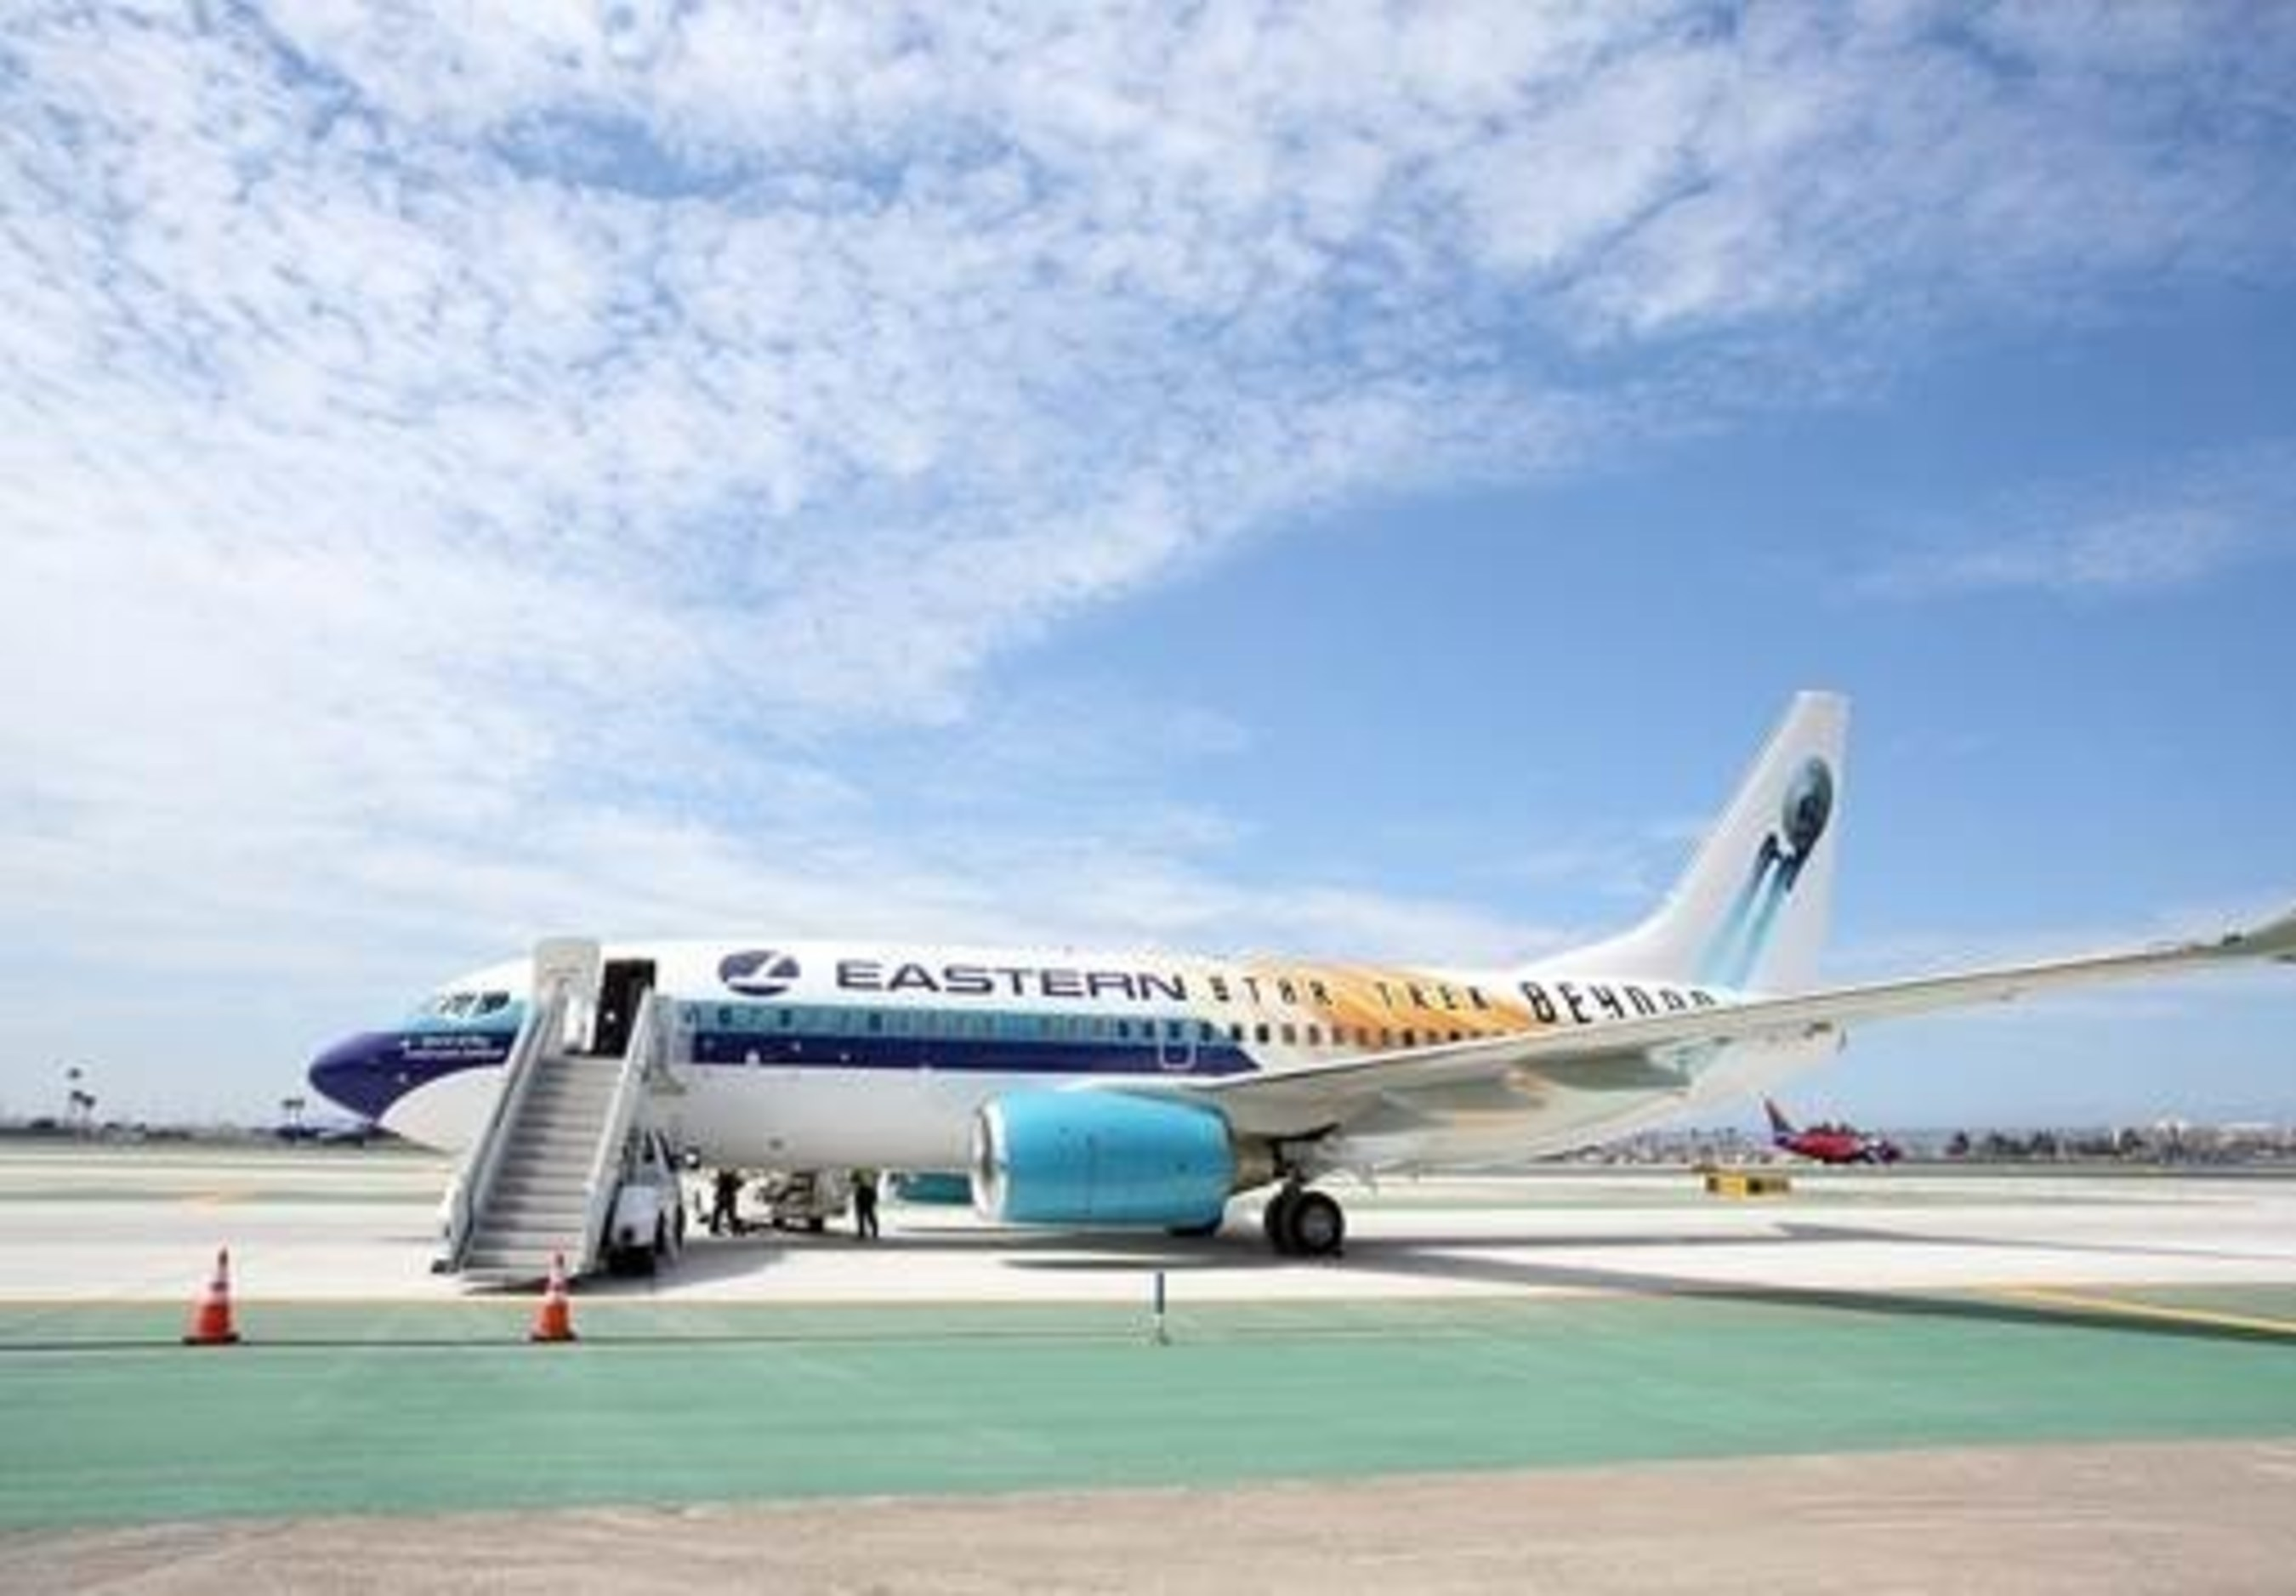 Paramount Pictures and Eastern Air Lines Sign Marketing Partnership